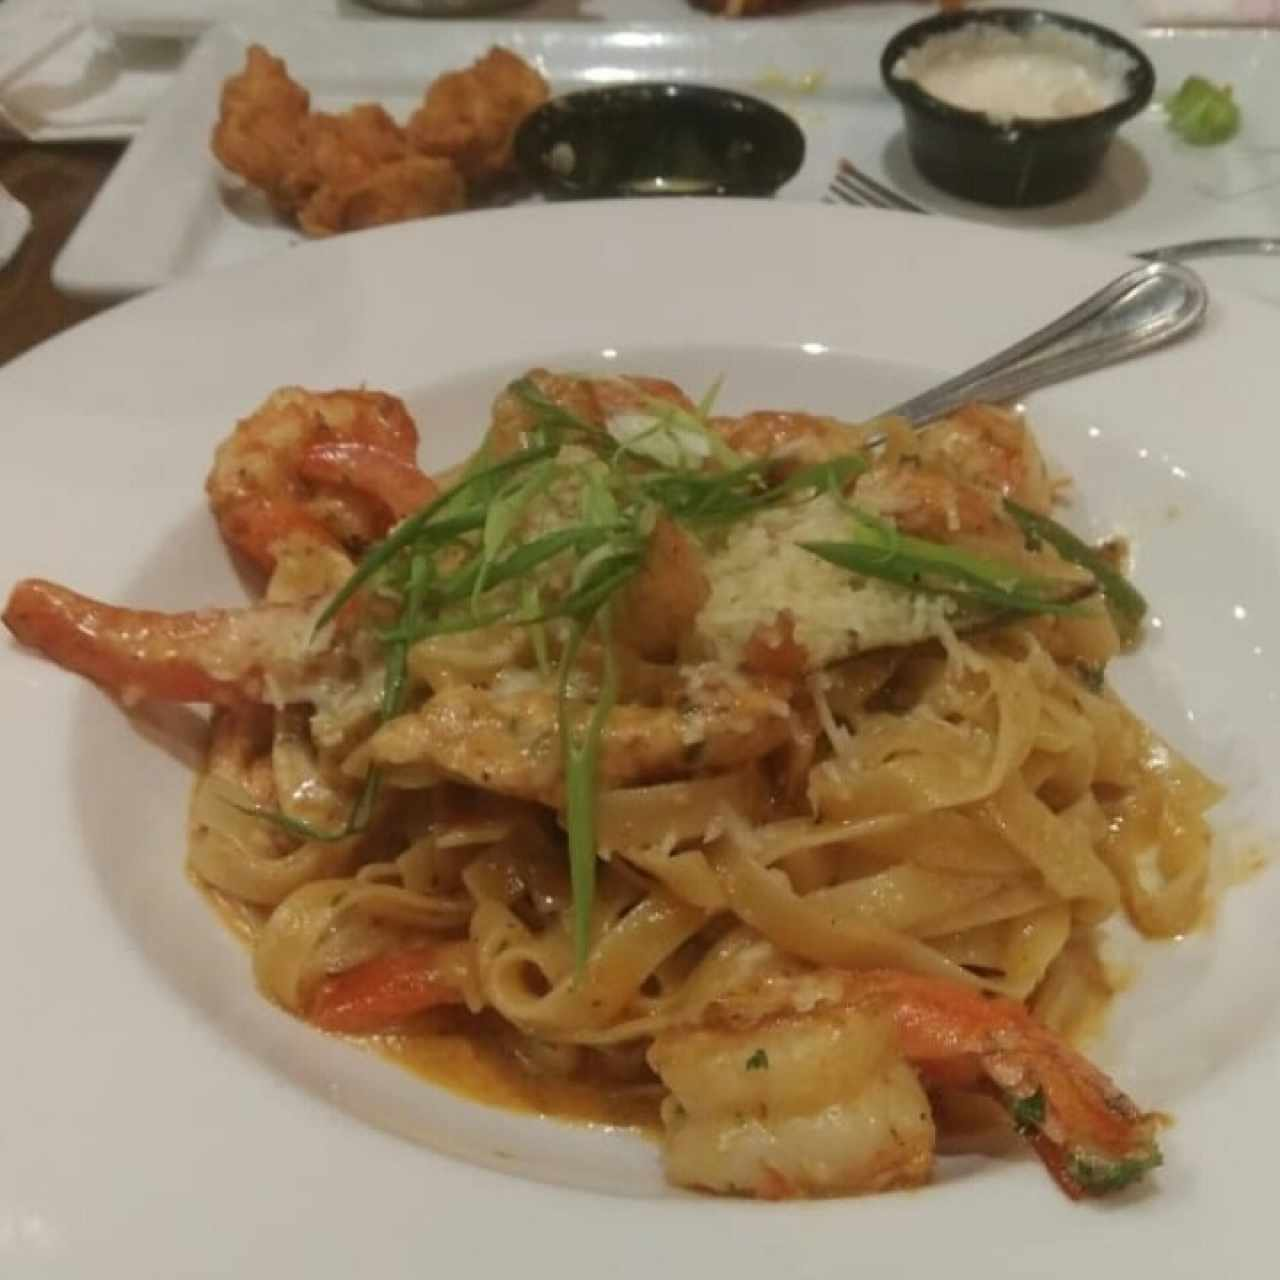 Cajun Chicken & Shrimp pasta